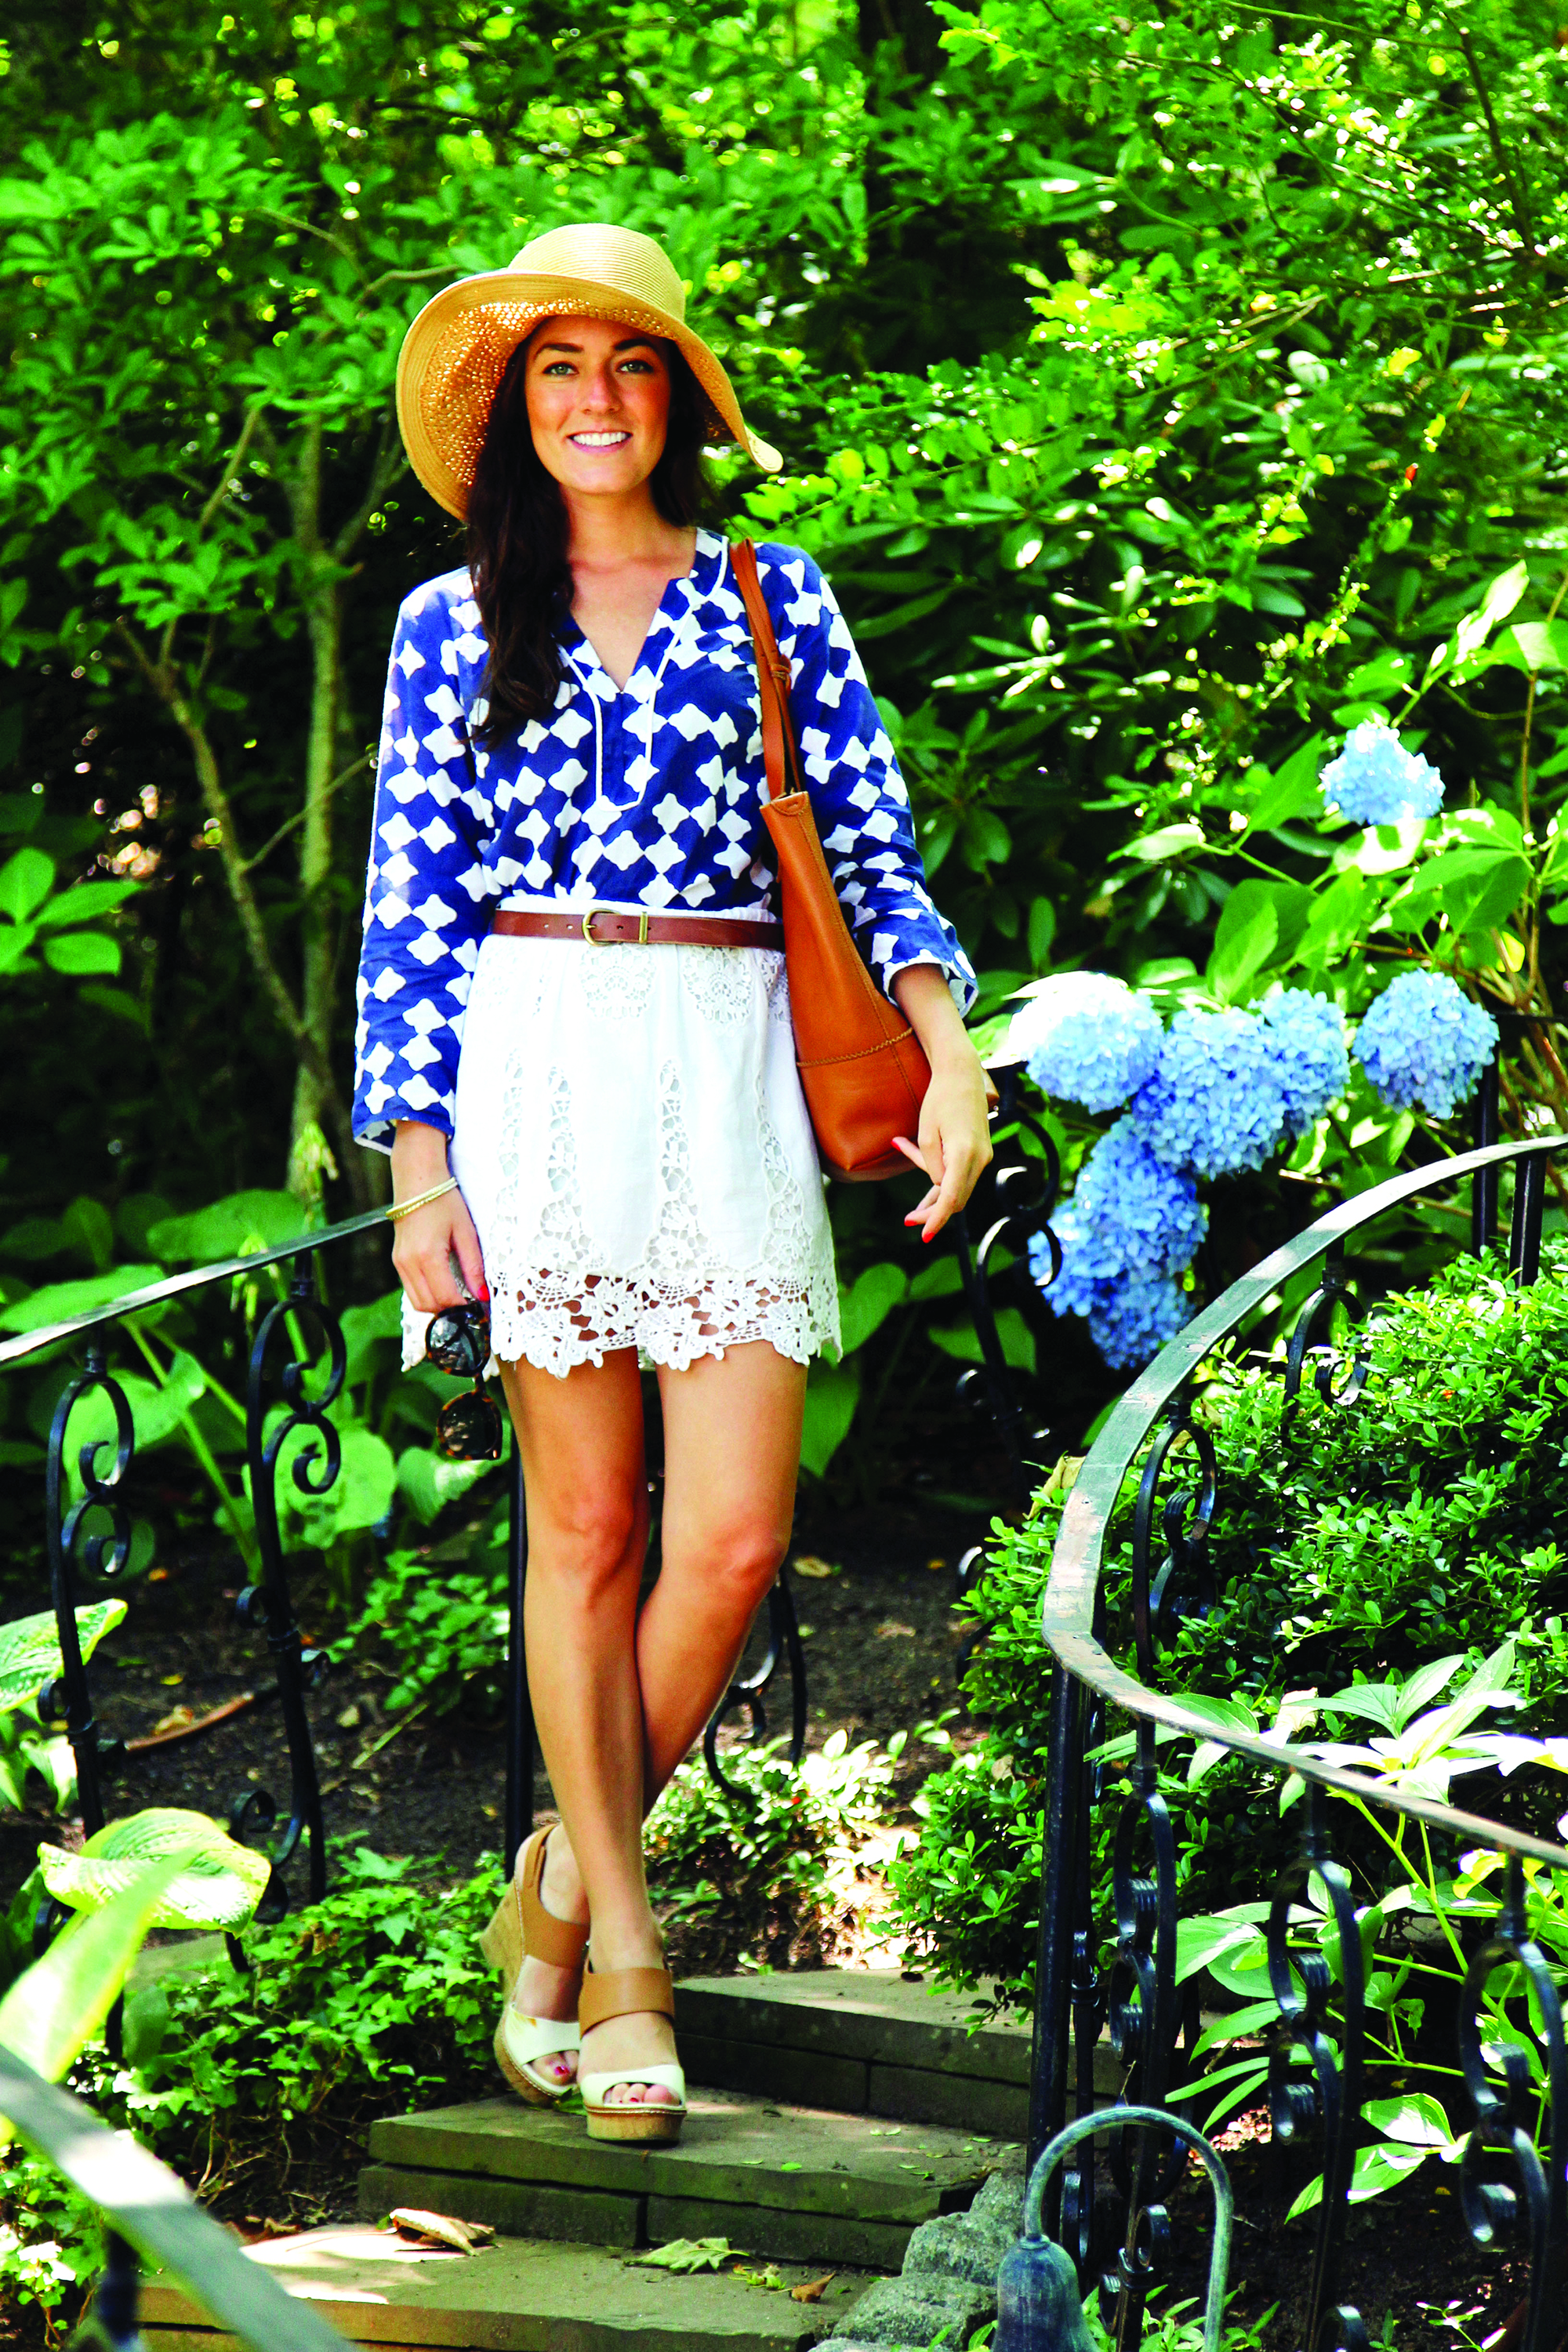 A fashionista in her own right, Vickers (@sarahkjp) has over 400,000 Instagram followers.